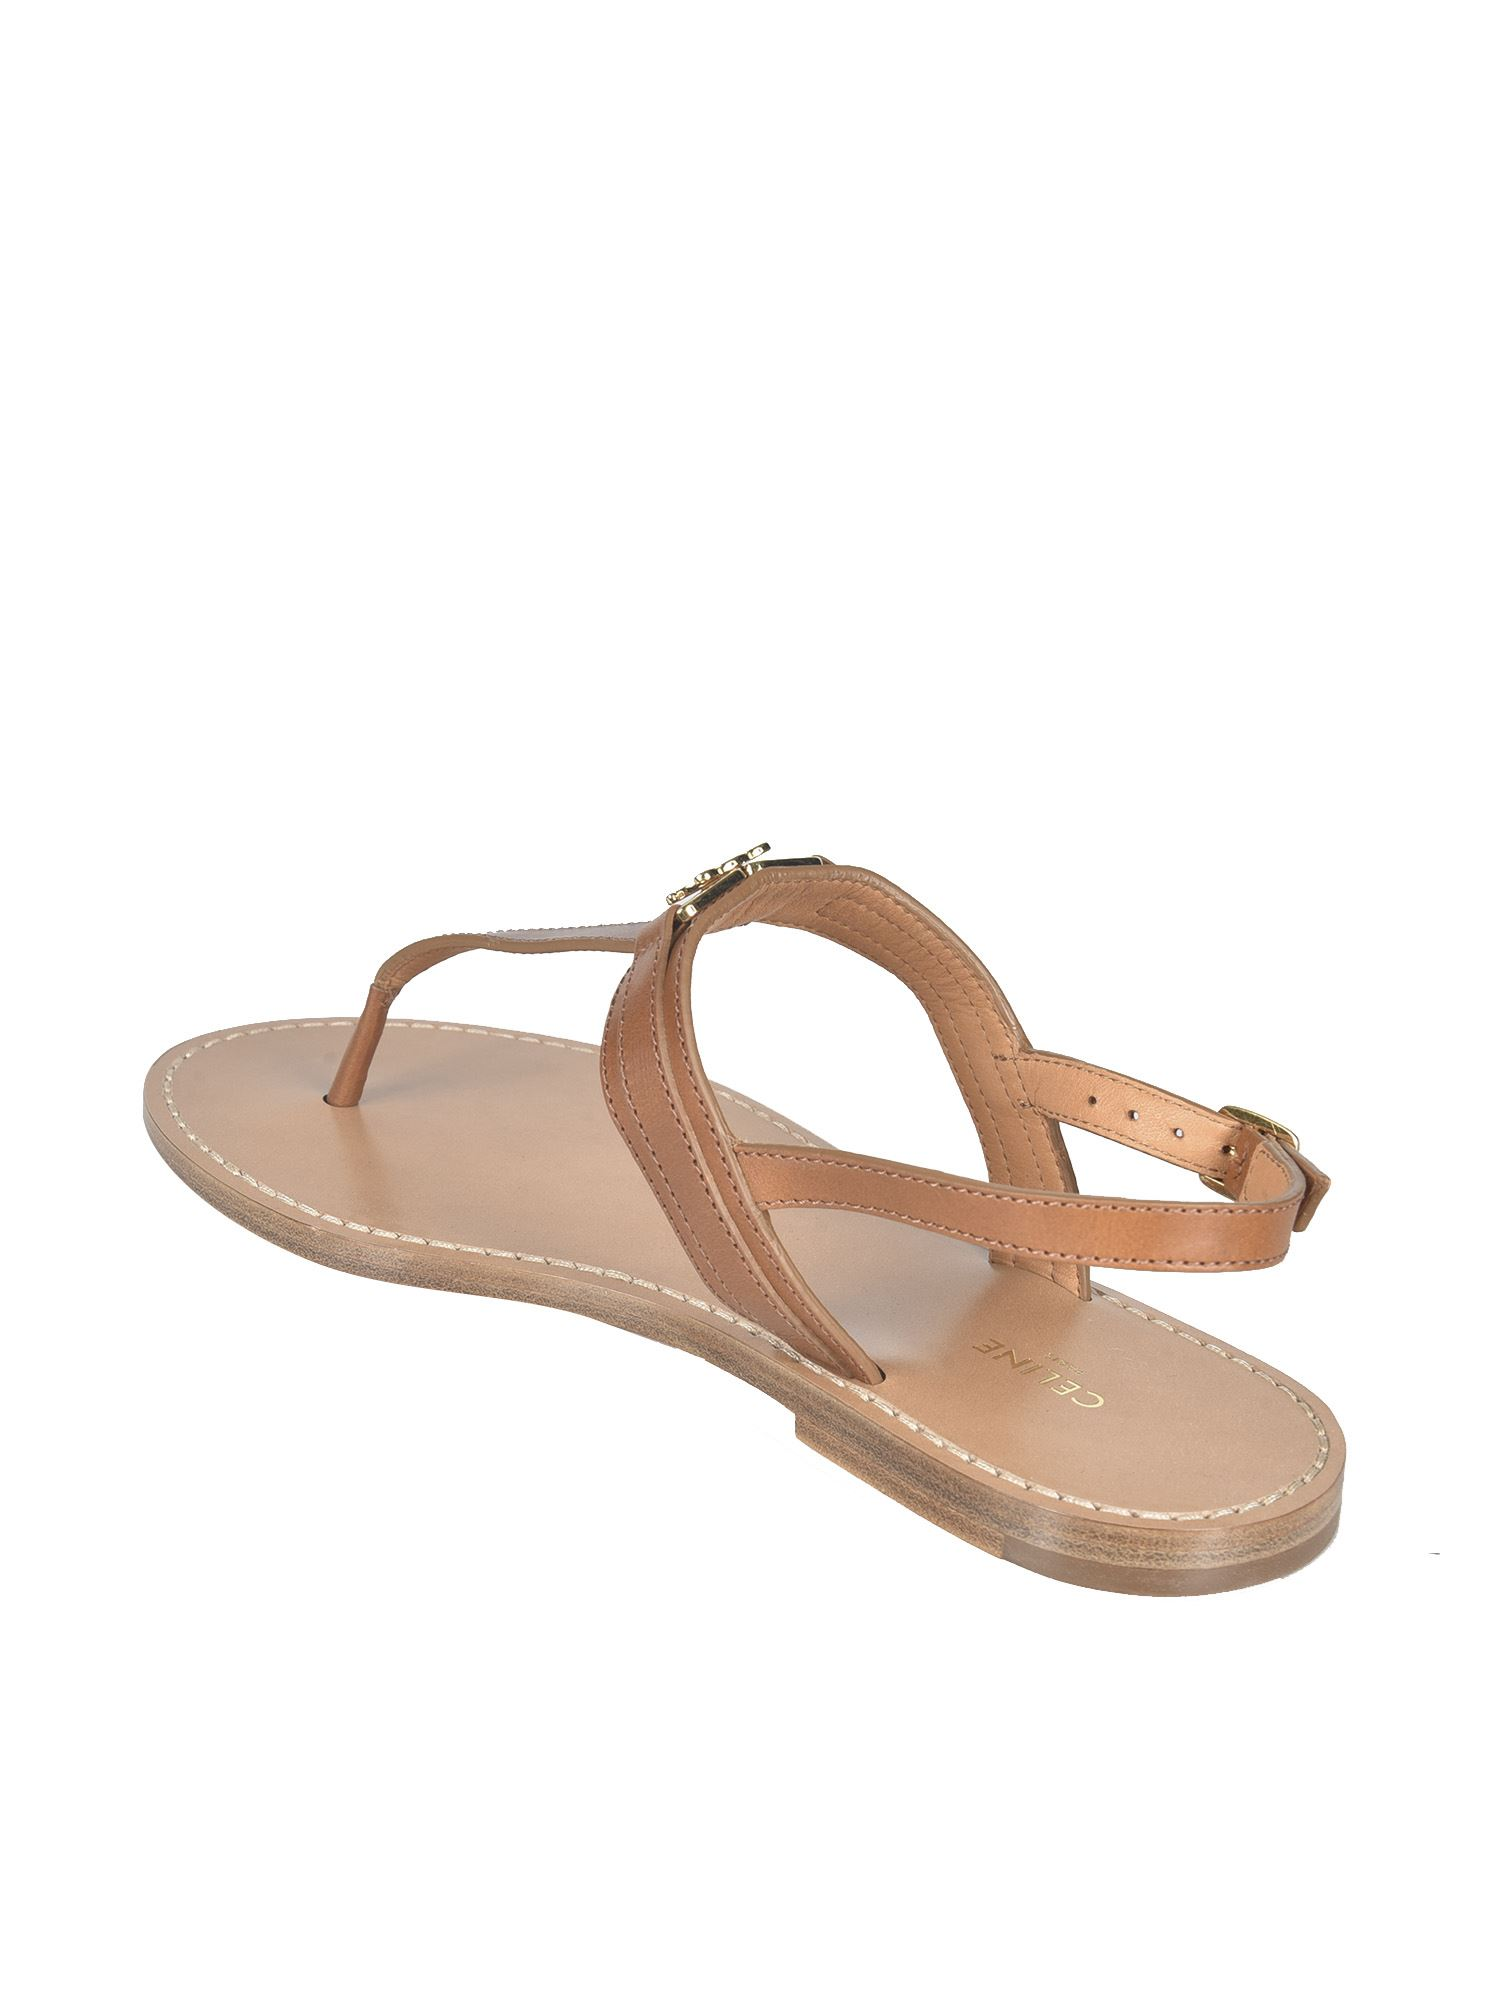 CELINE Leathers TRIOMPHE SANDALS IN TAN COLOR